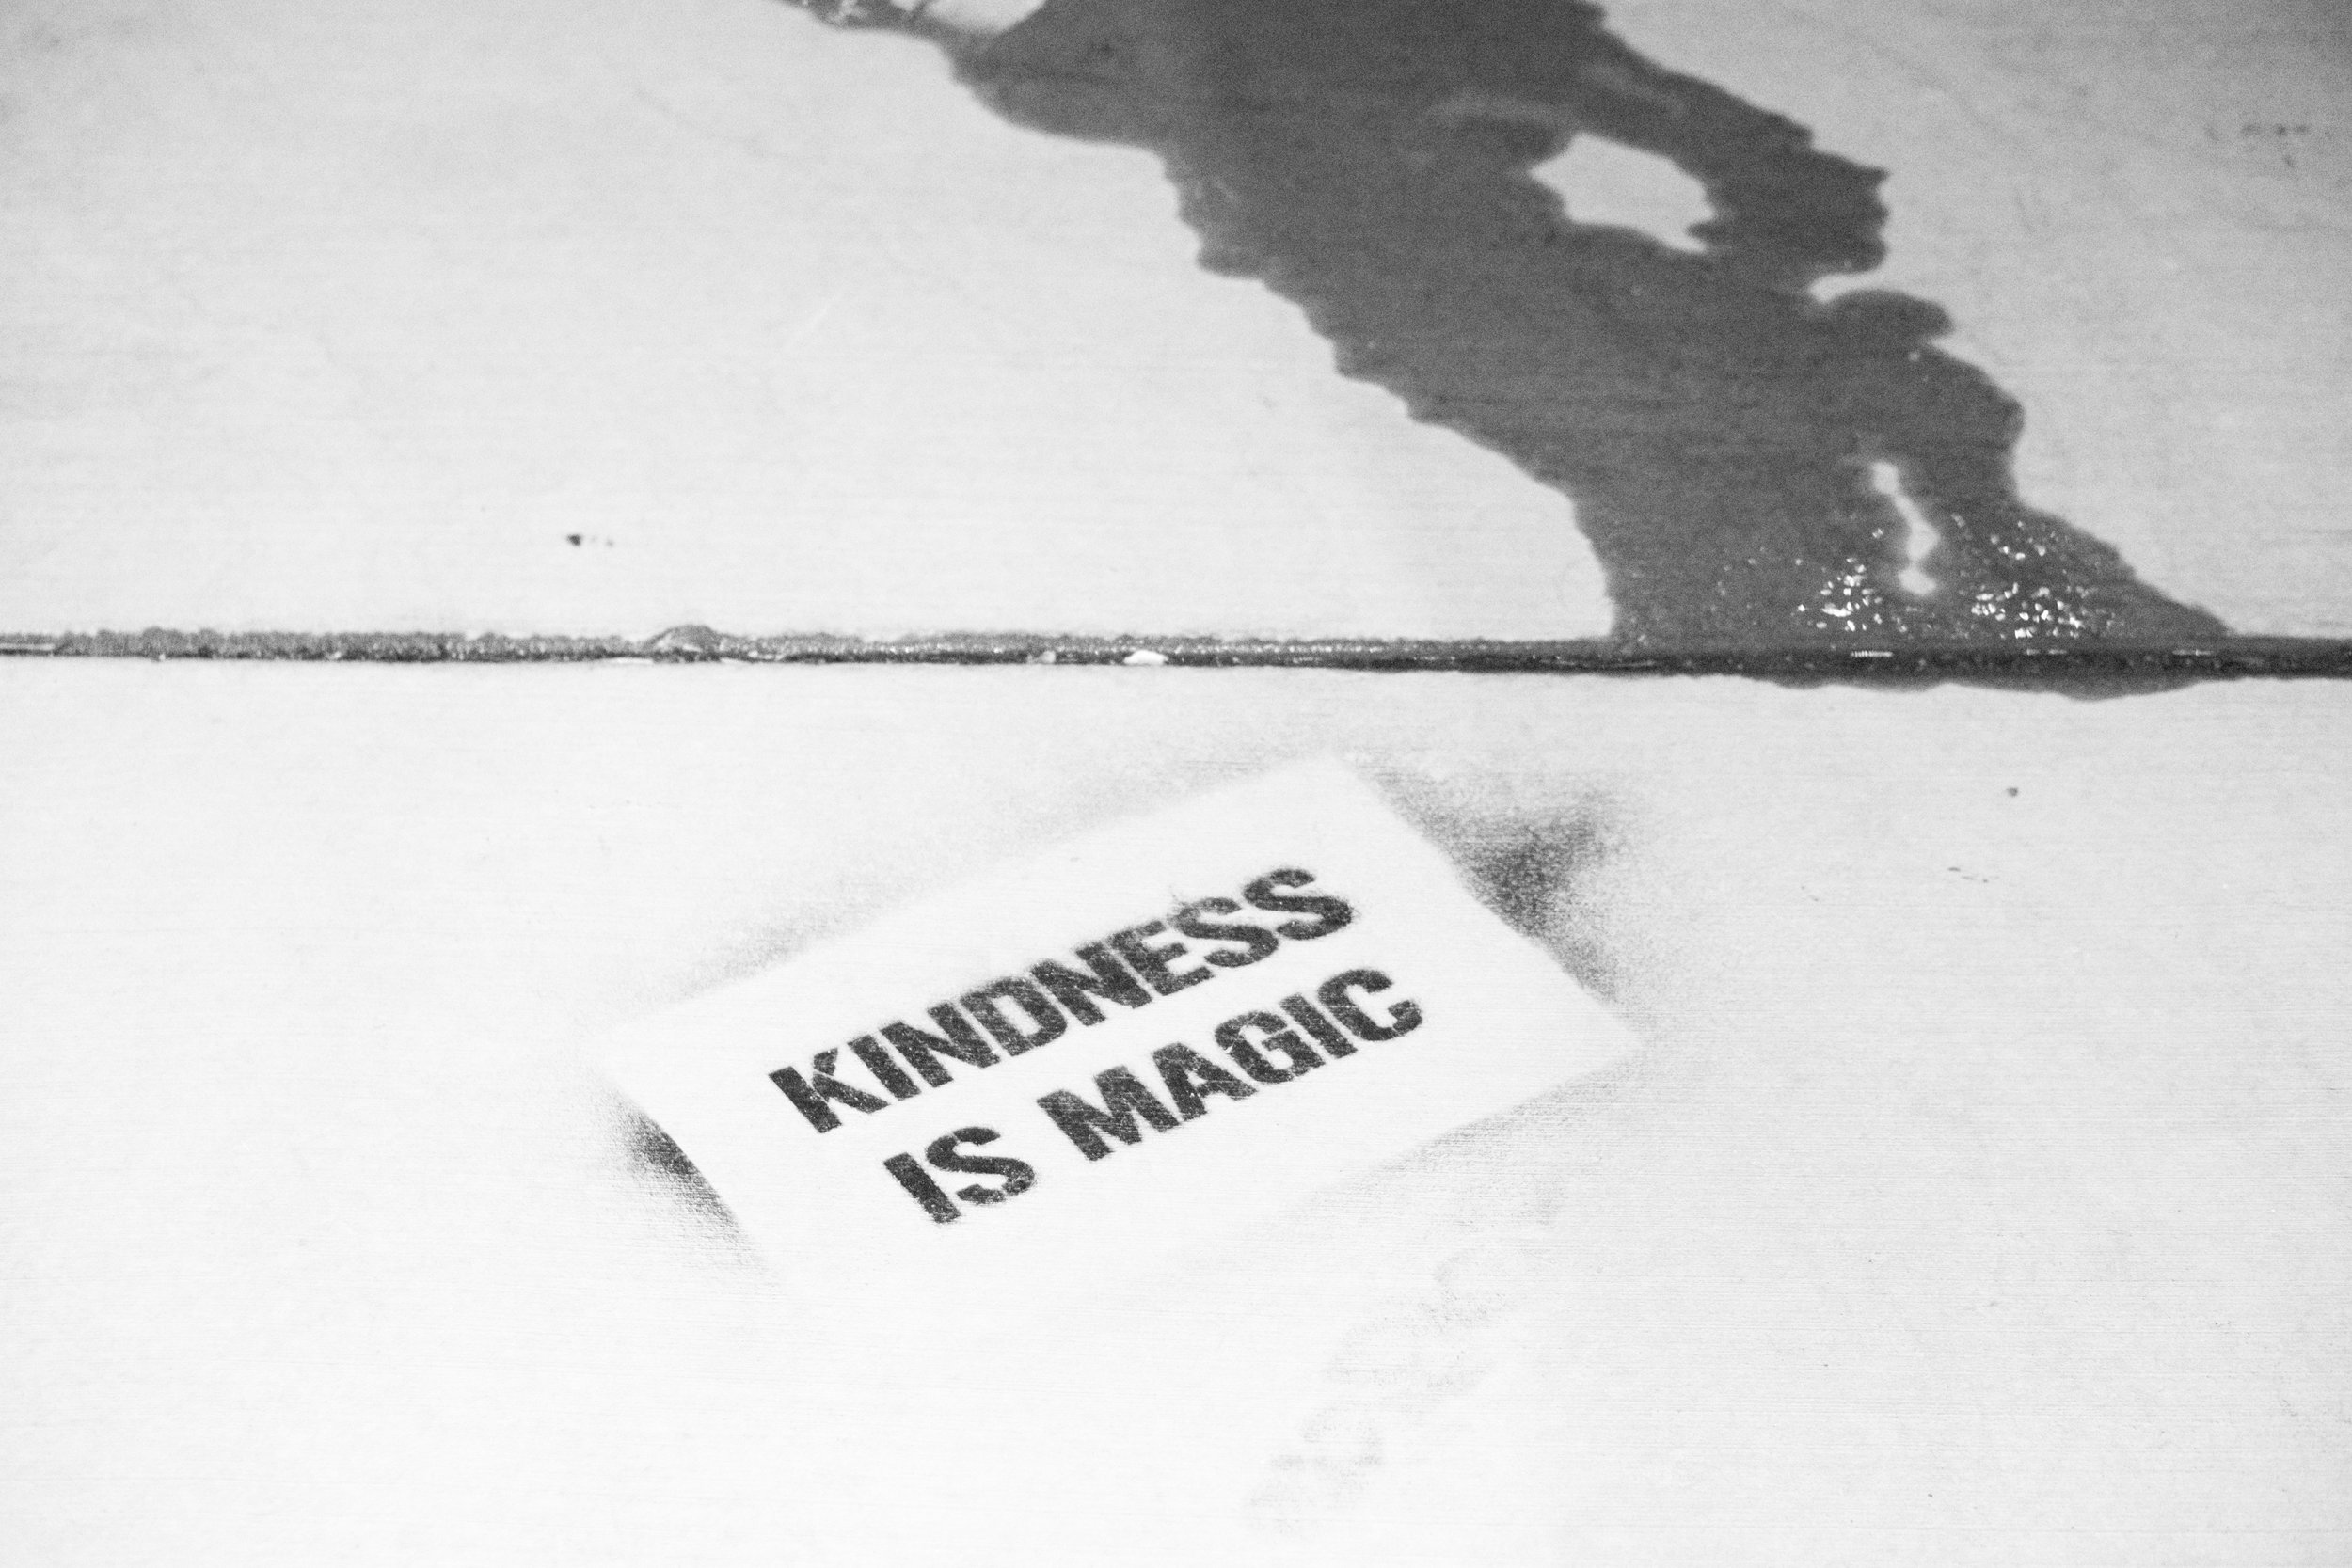 Kindness - treating others with dignity and respect